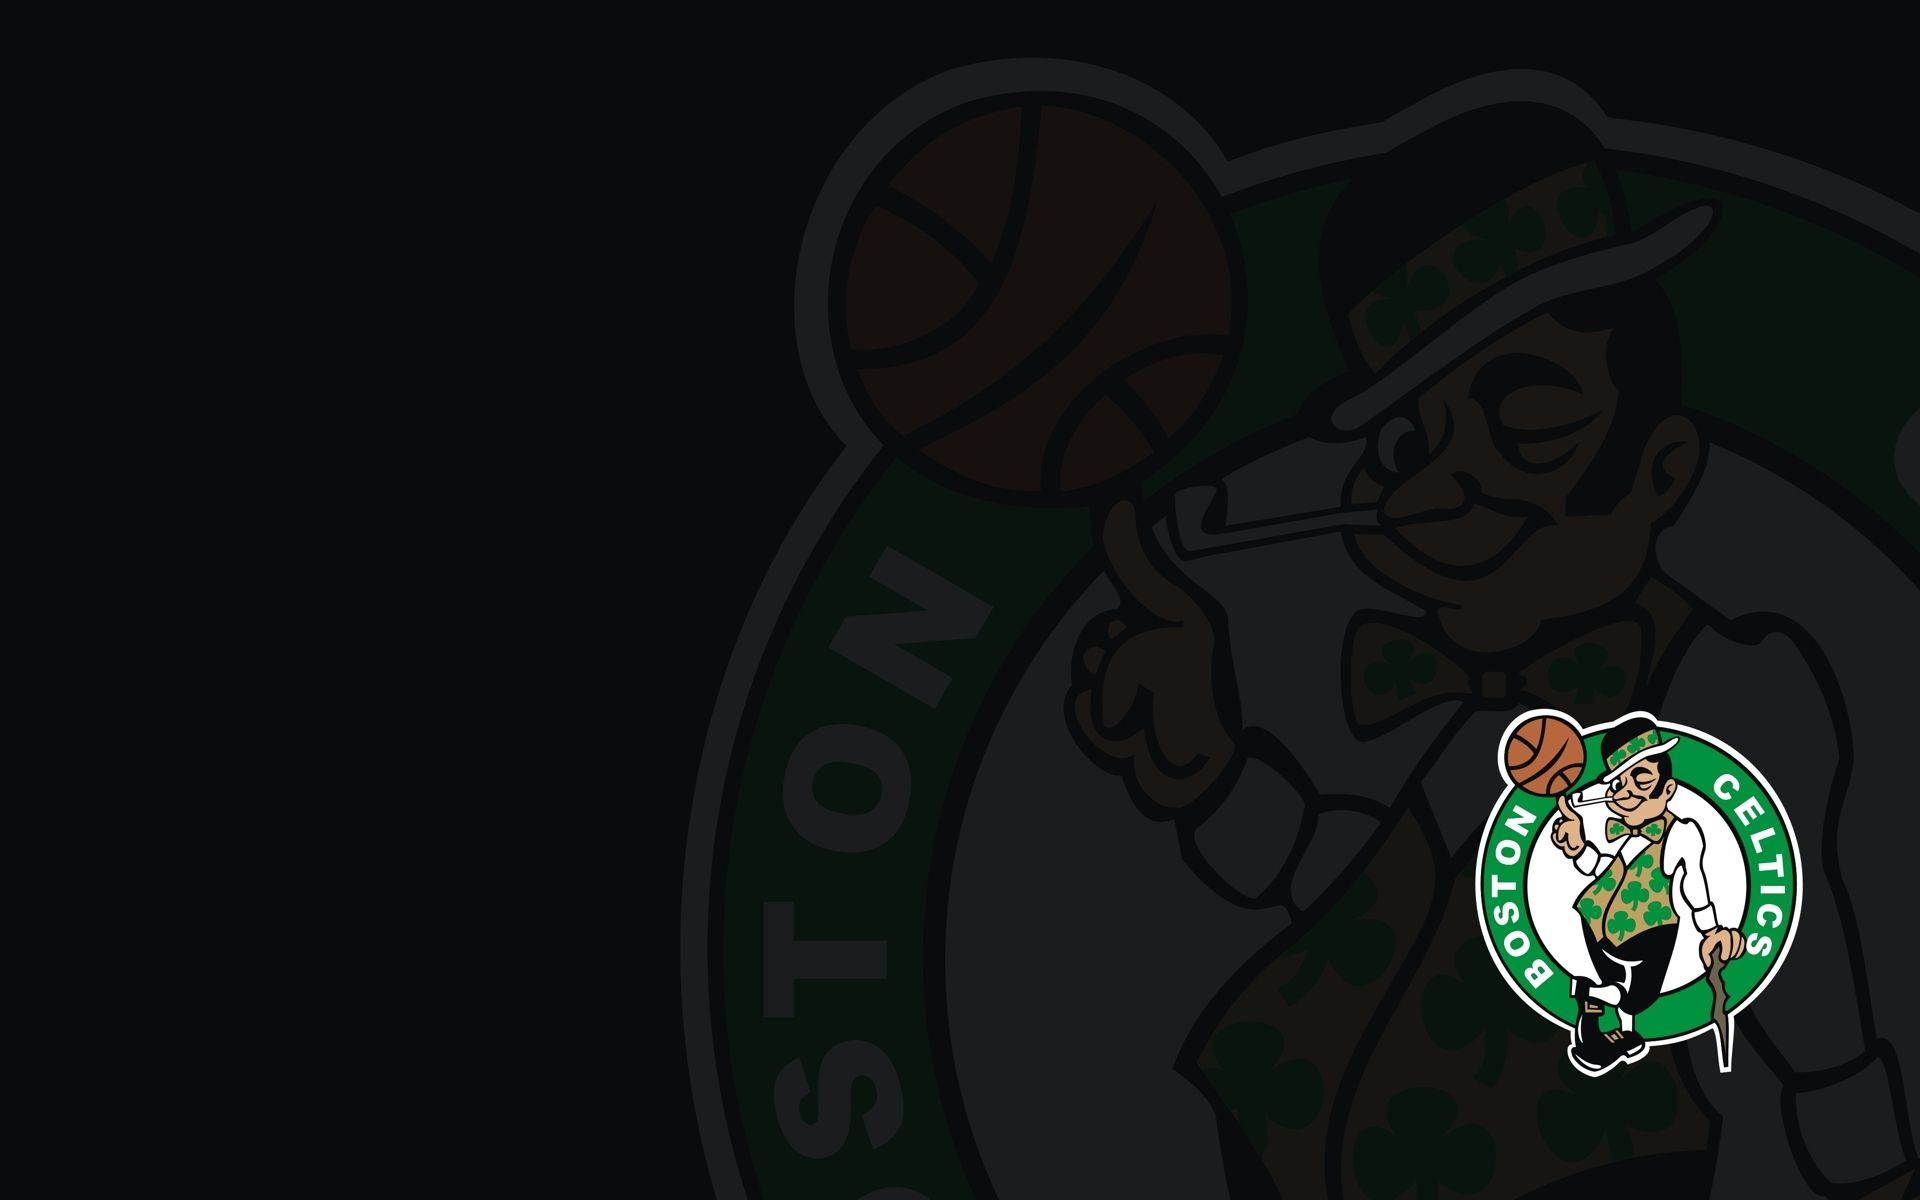 Celtics HD Wallpaper Boston celtics wallpaper, Celtic